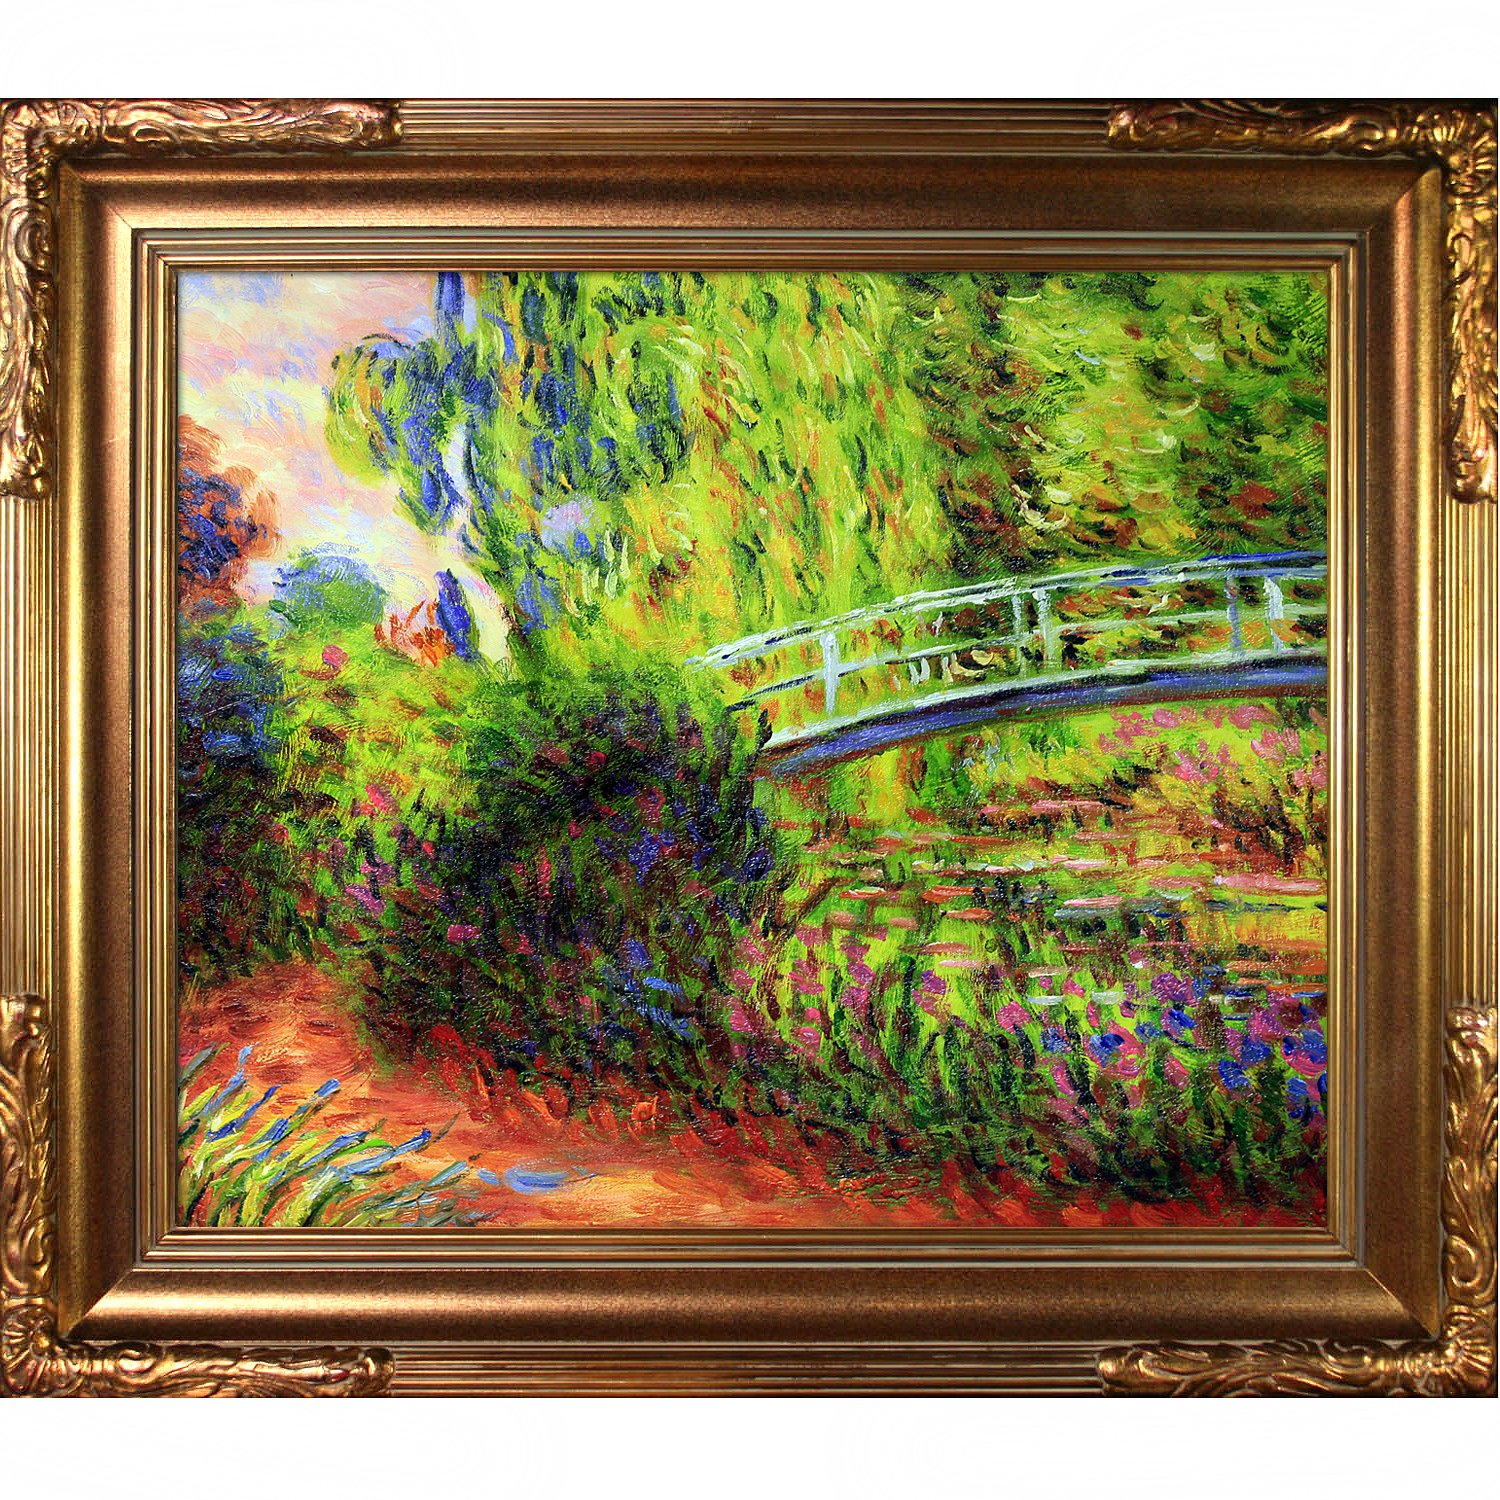 Amazon.com: Hand-Painted Reproduction of Claude Monet The Japanese ...